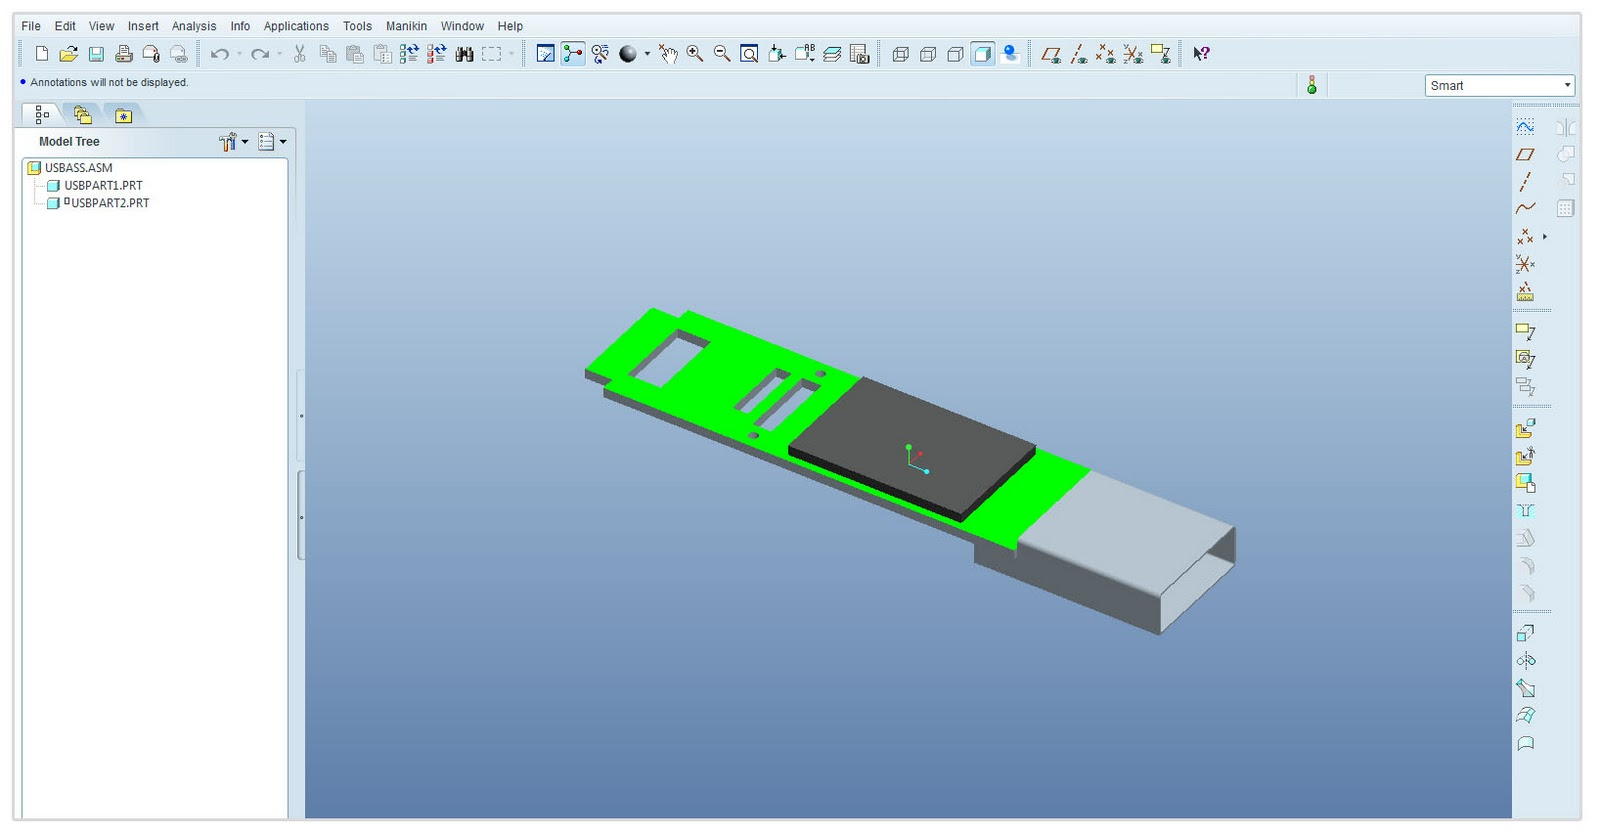 Design & Manufacture CAD/CAM Project: Developing Ideas